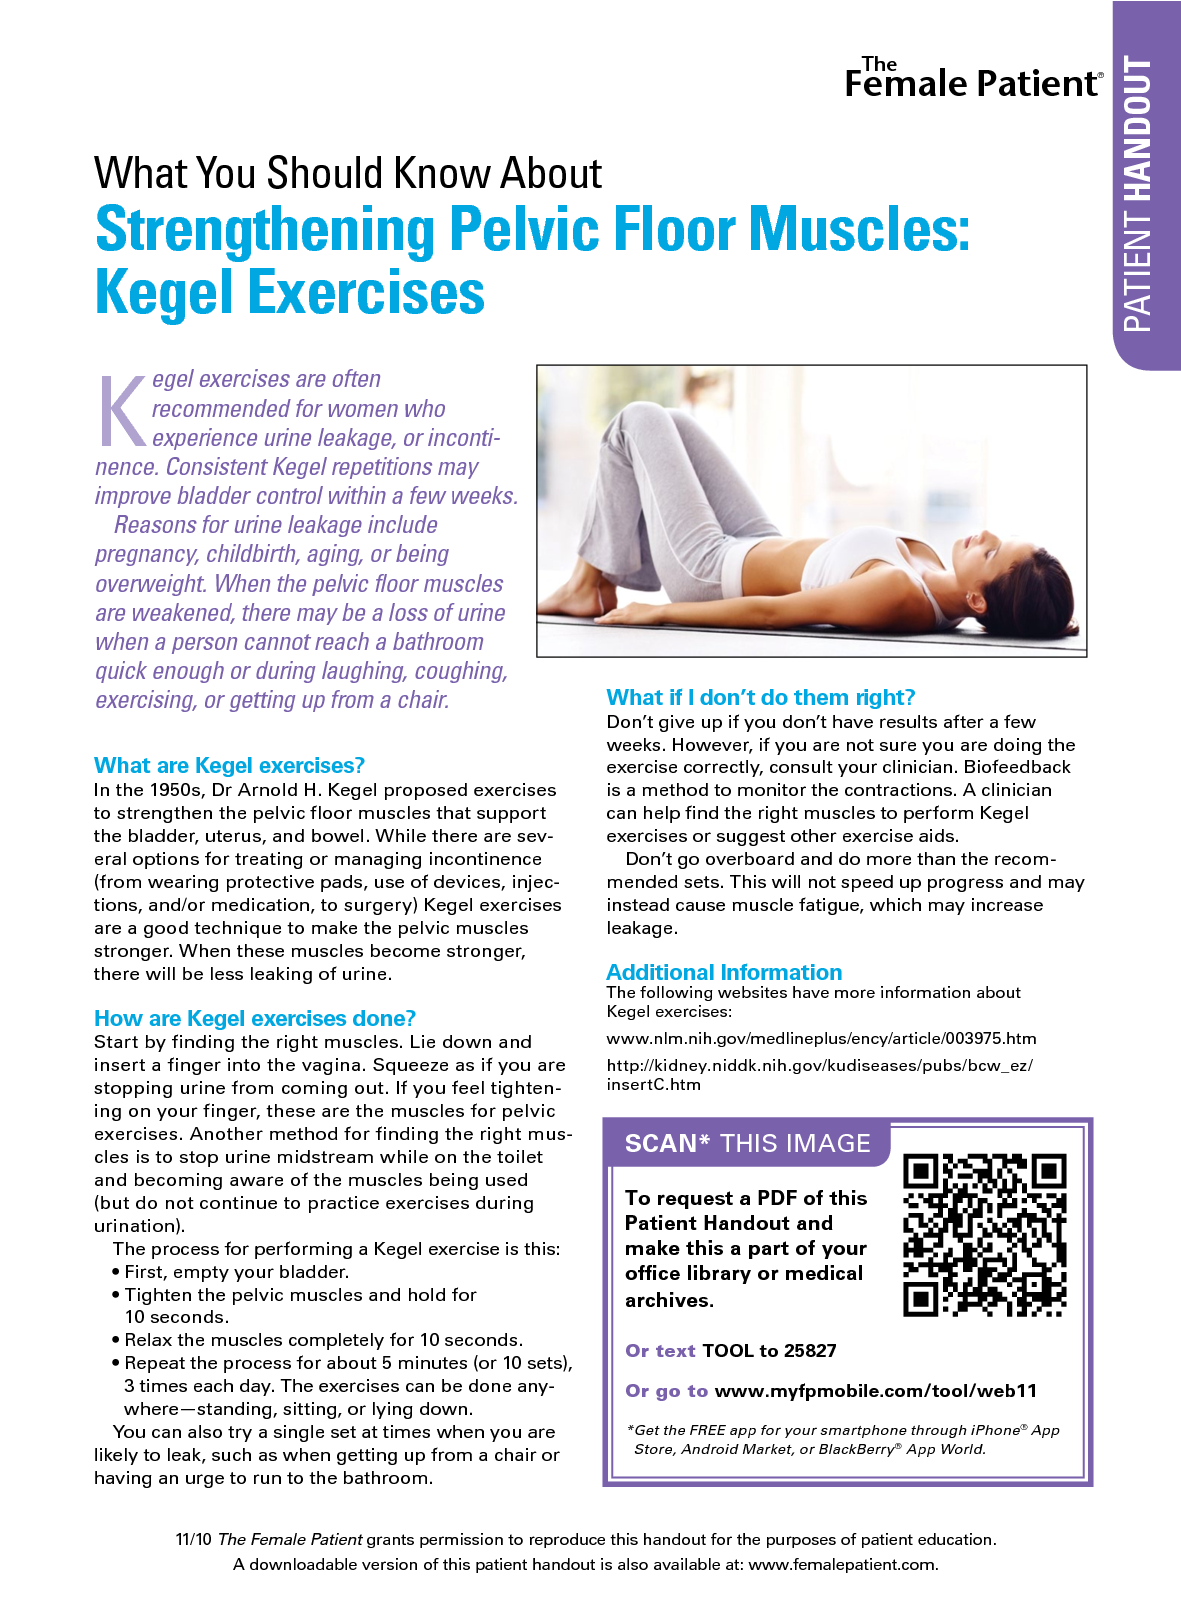 Kegel Exercises Pdf Handout